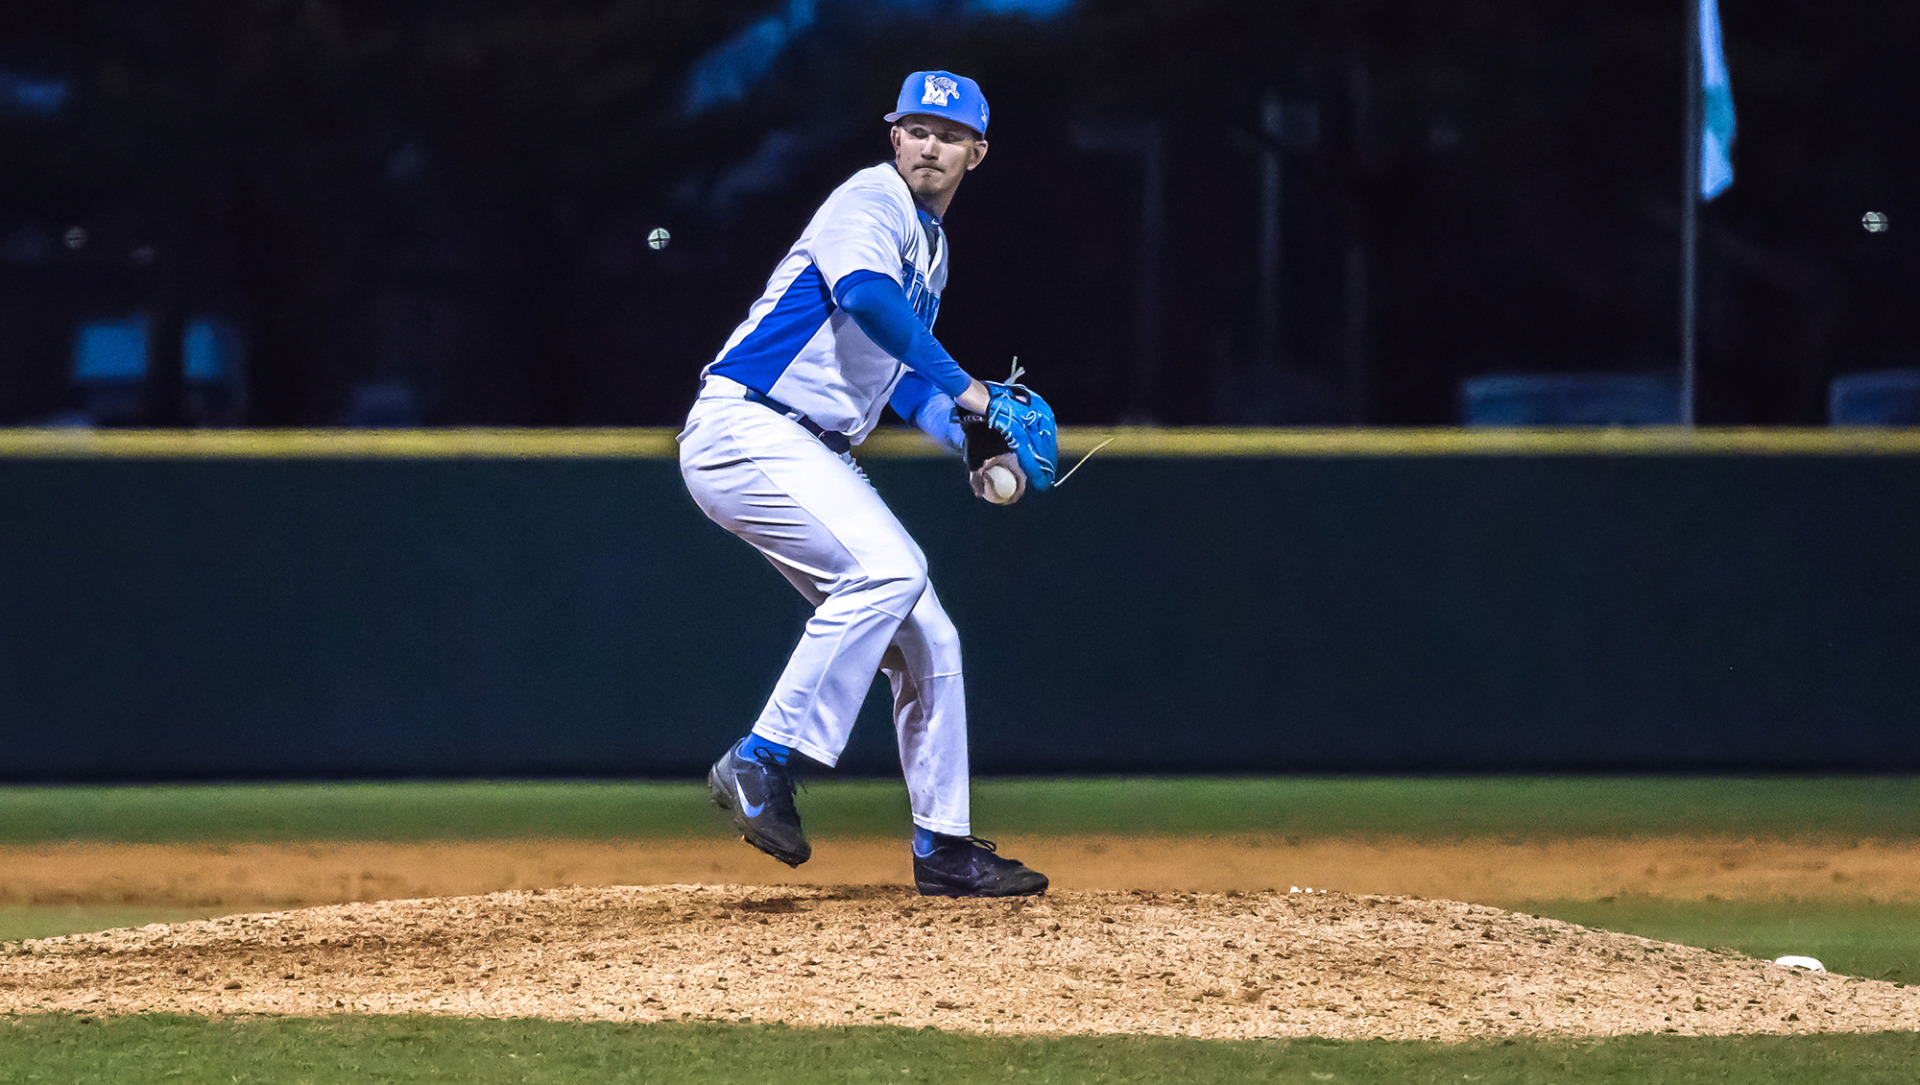 <strong>Senior lefthander Hunter Smith gets the ball on Friday as the opening day starter for the Memphis Tigers when baseball season begins against Indiana.</strong> (Photo courtesy of the University of Memphis)